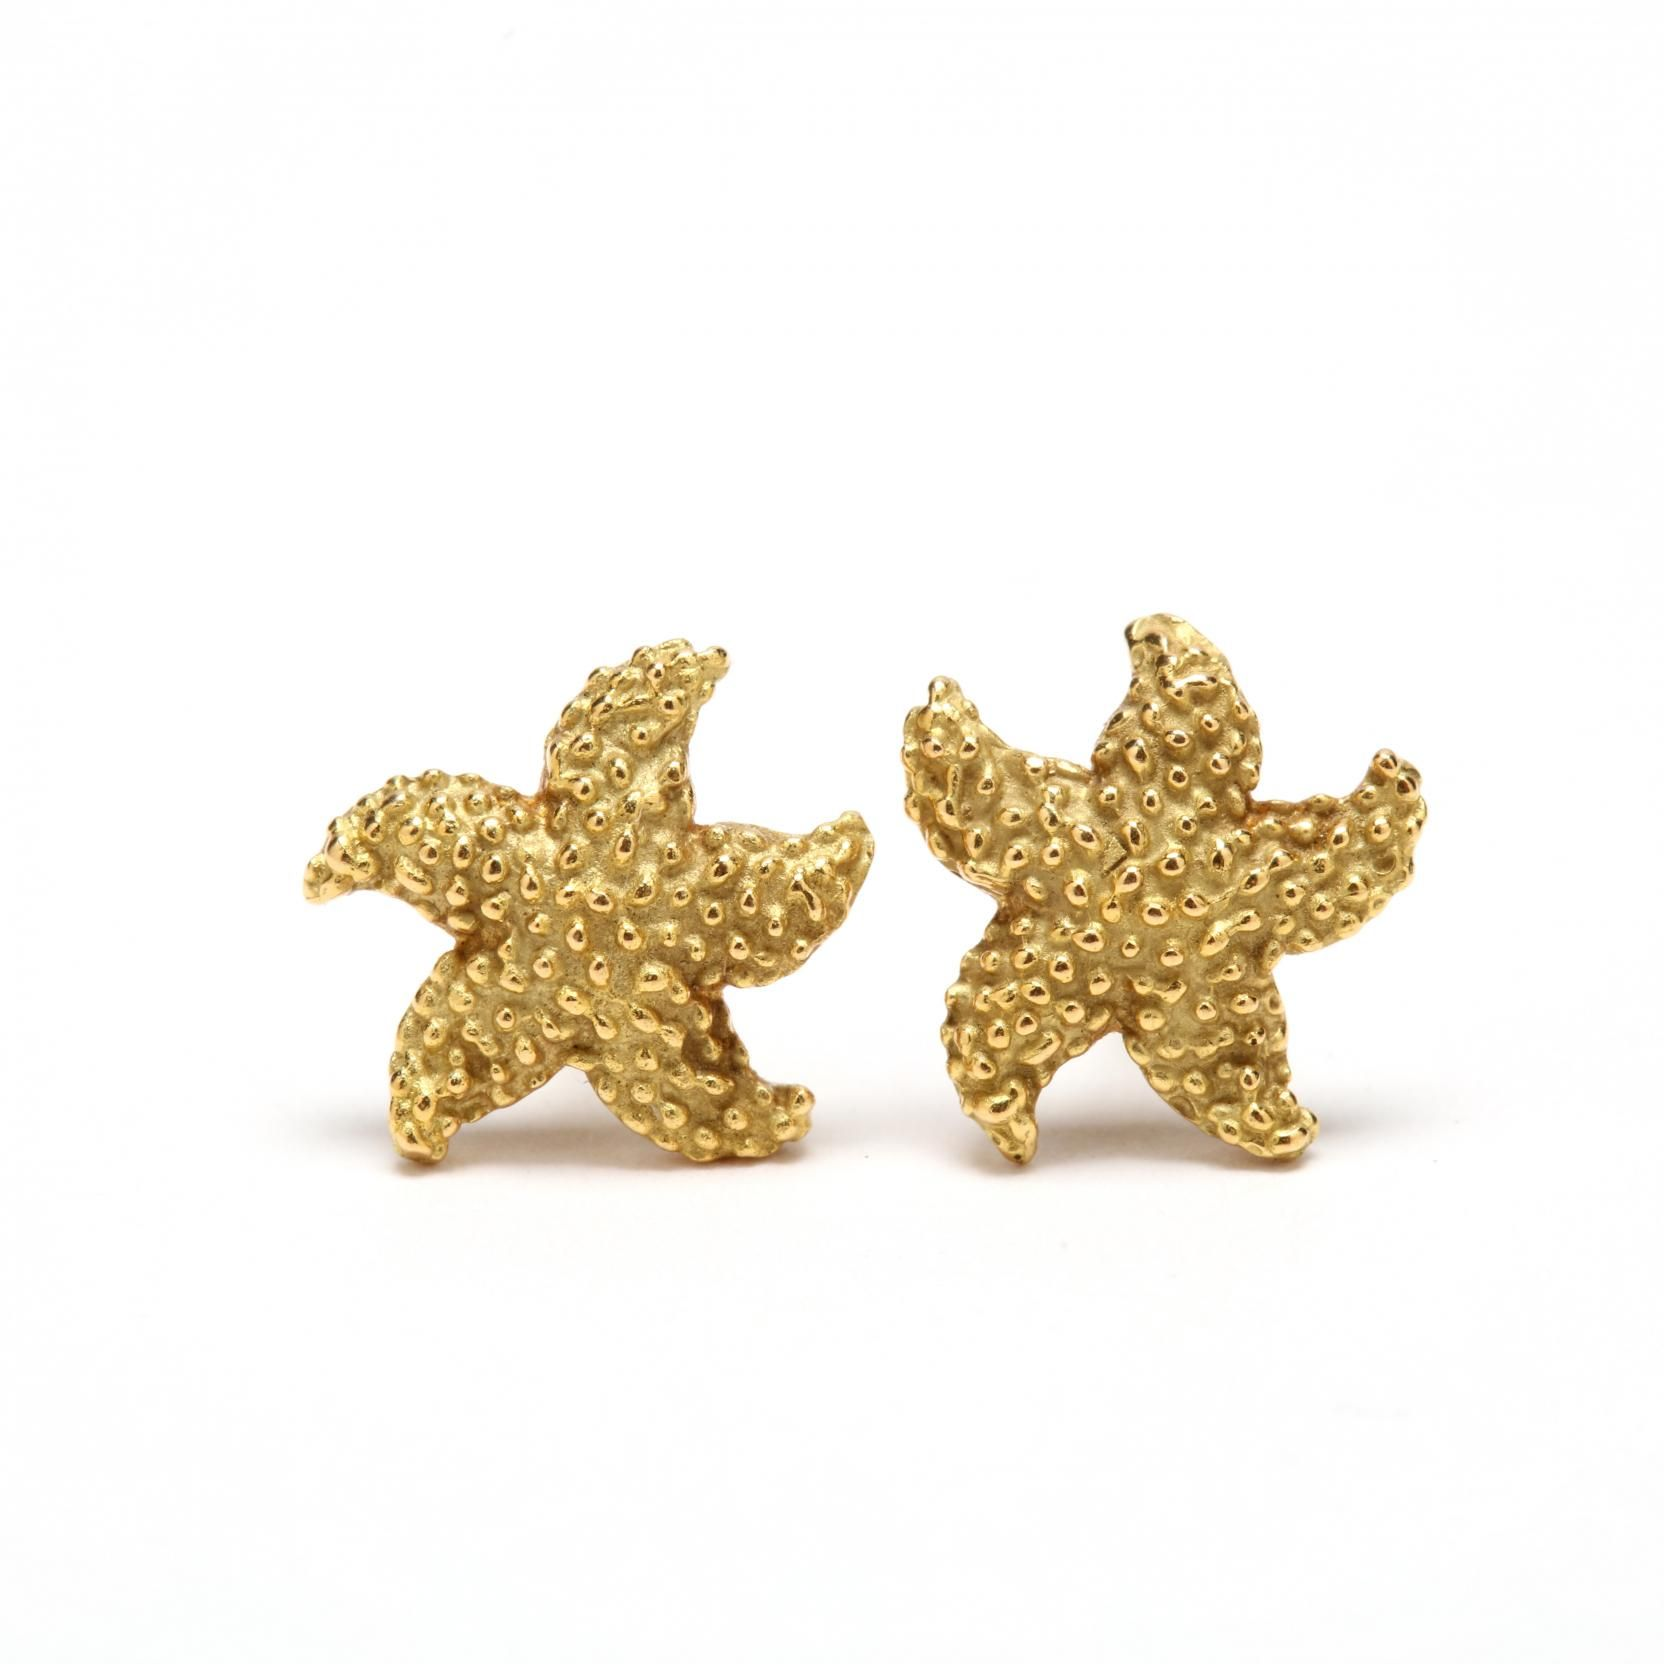 starfish earrings gold white studs stud pin